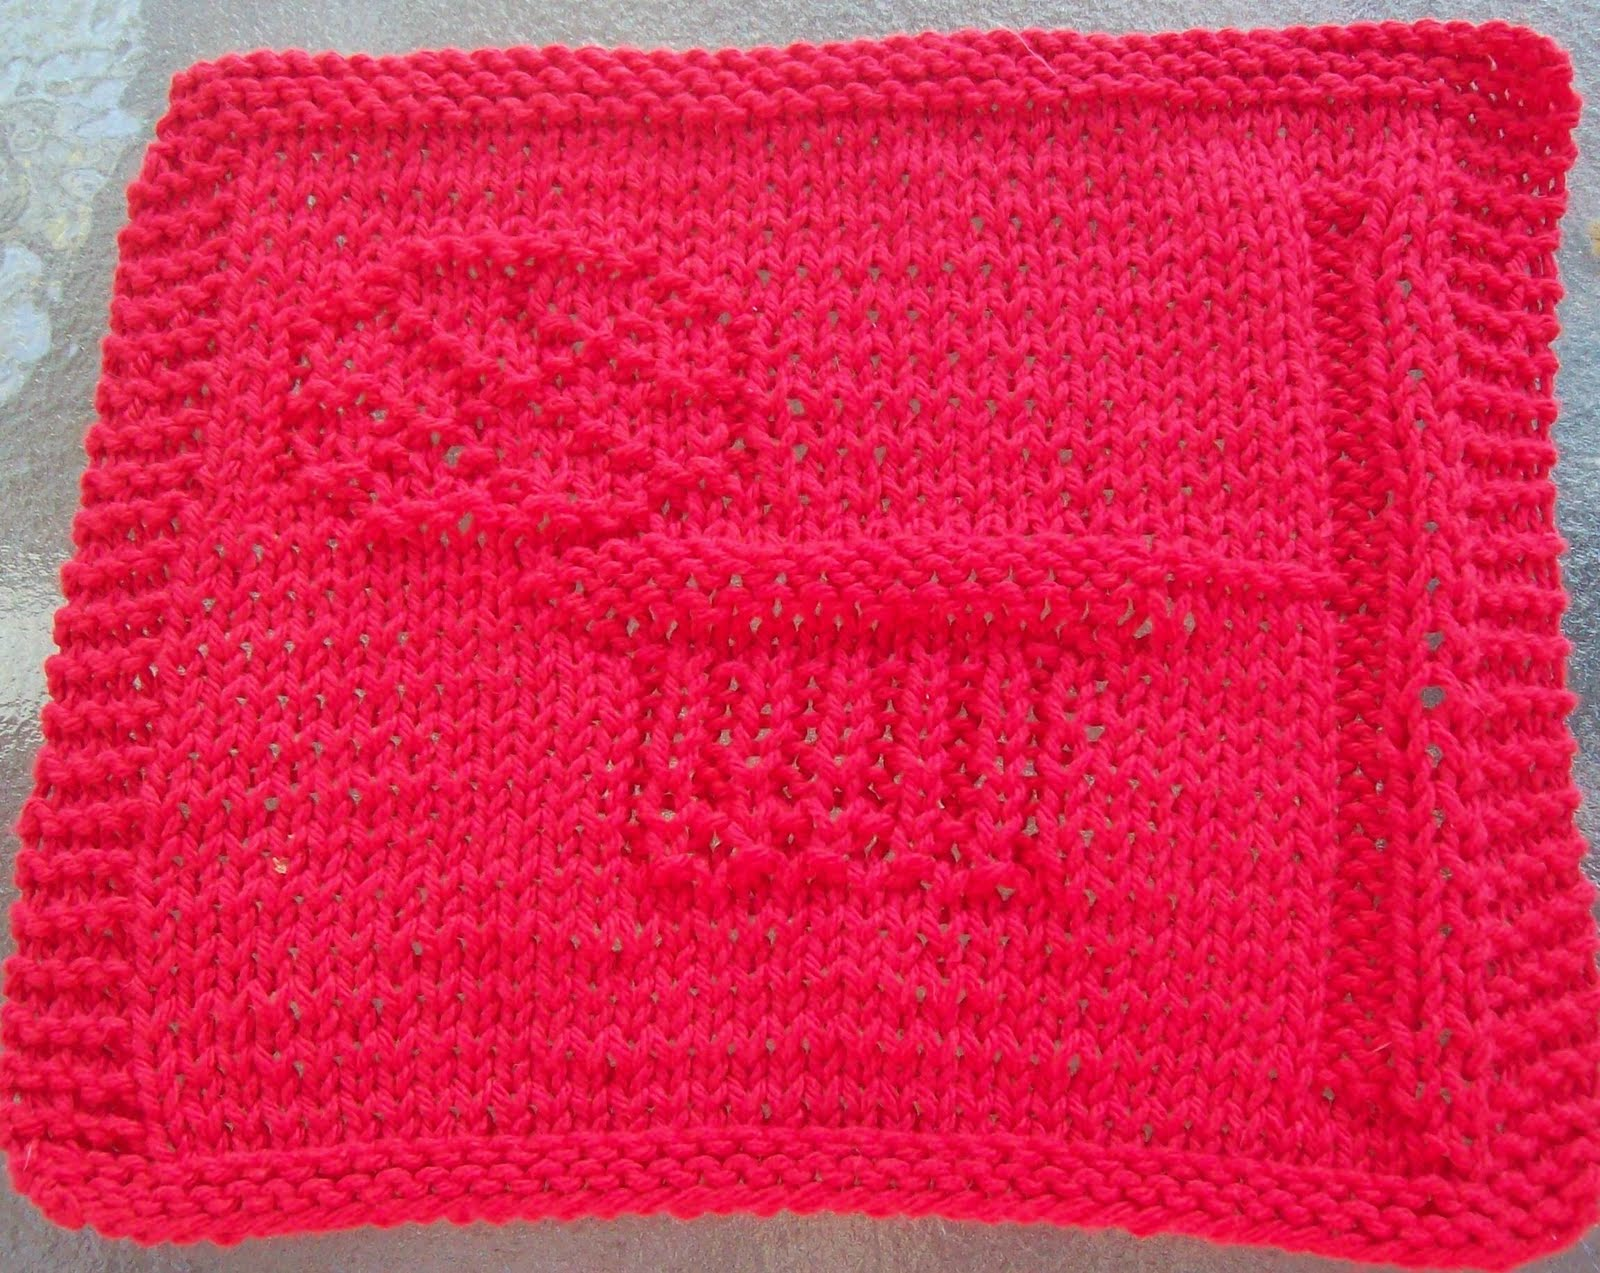 DigKnitty Designs: Basketball Hoop Knit Dishcloth Pattern